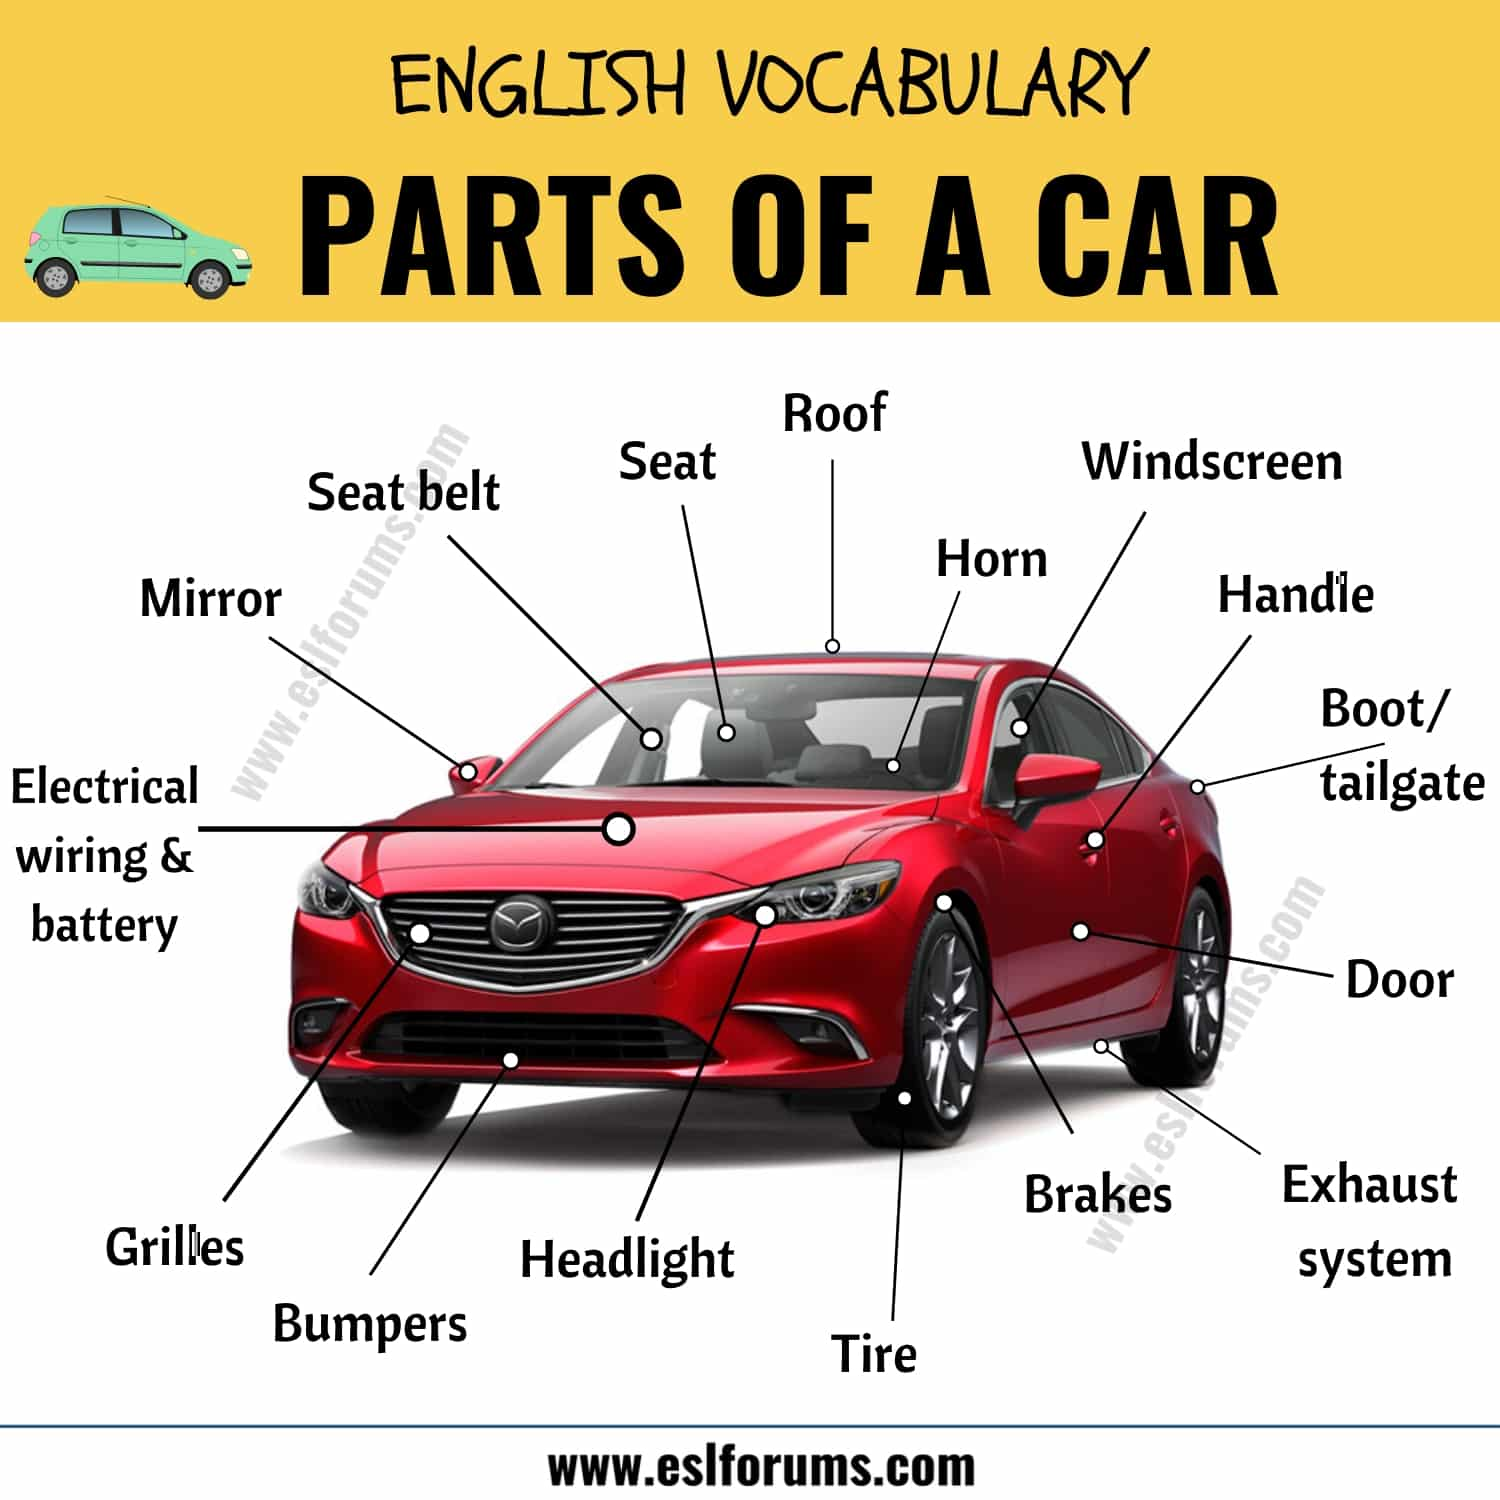 Parts of a Car: Learn Different Parts of a Car with ESL Picture!